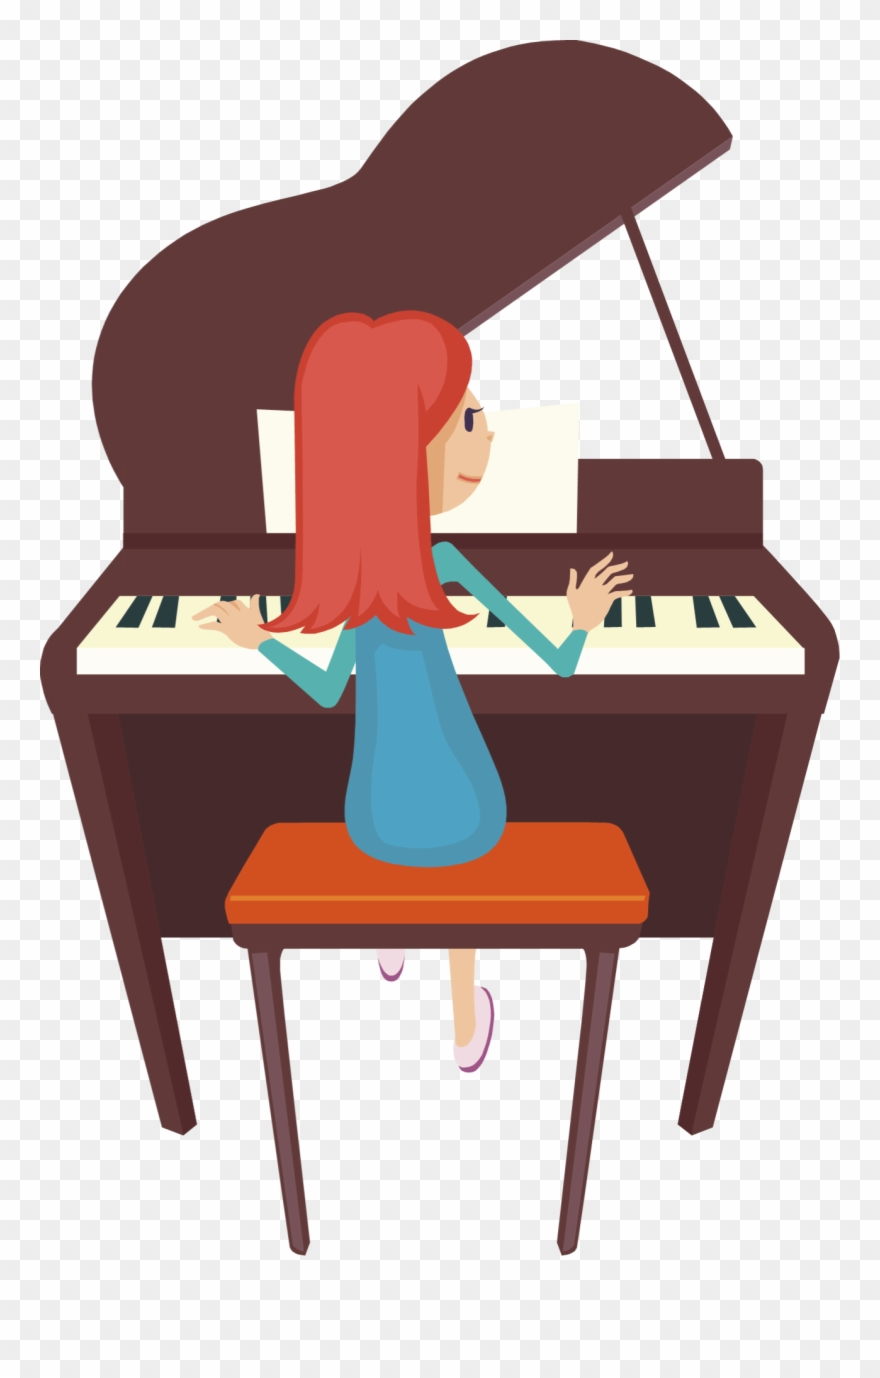 Playing piano clipart svg library download Piano Clipart Two - Cartoon Girl Playing Piano - Png Download ... svg library download